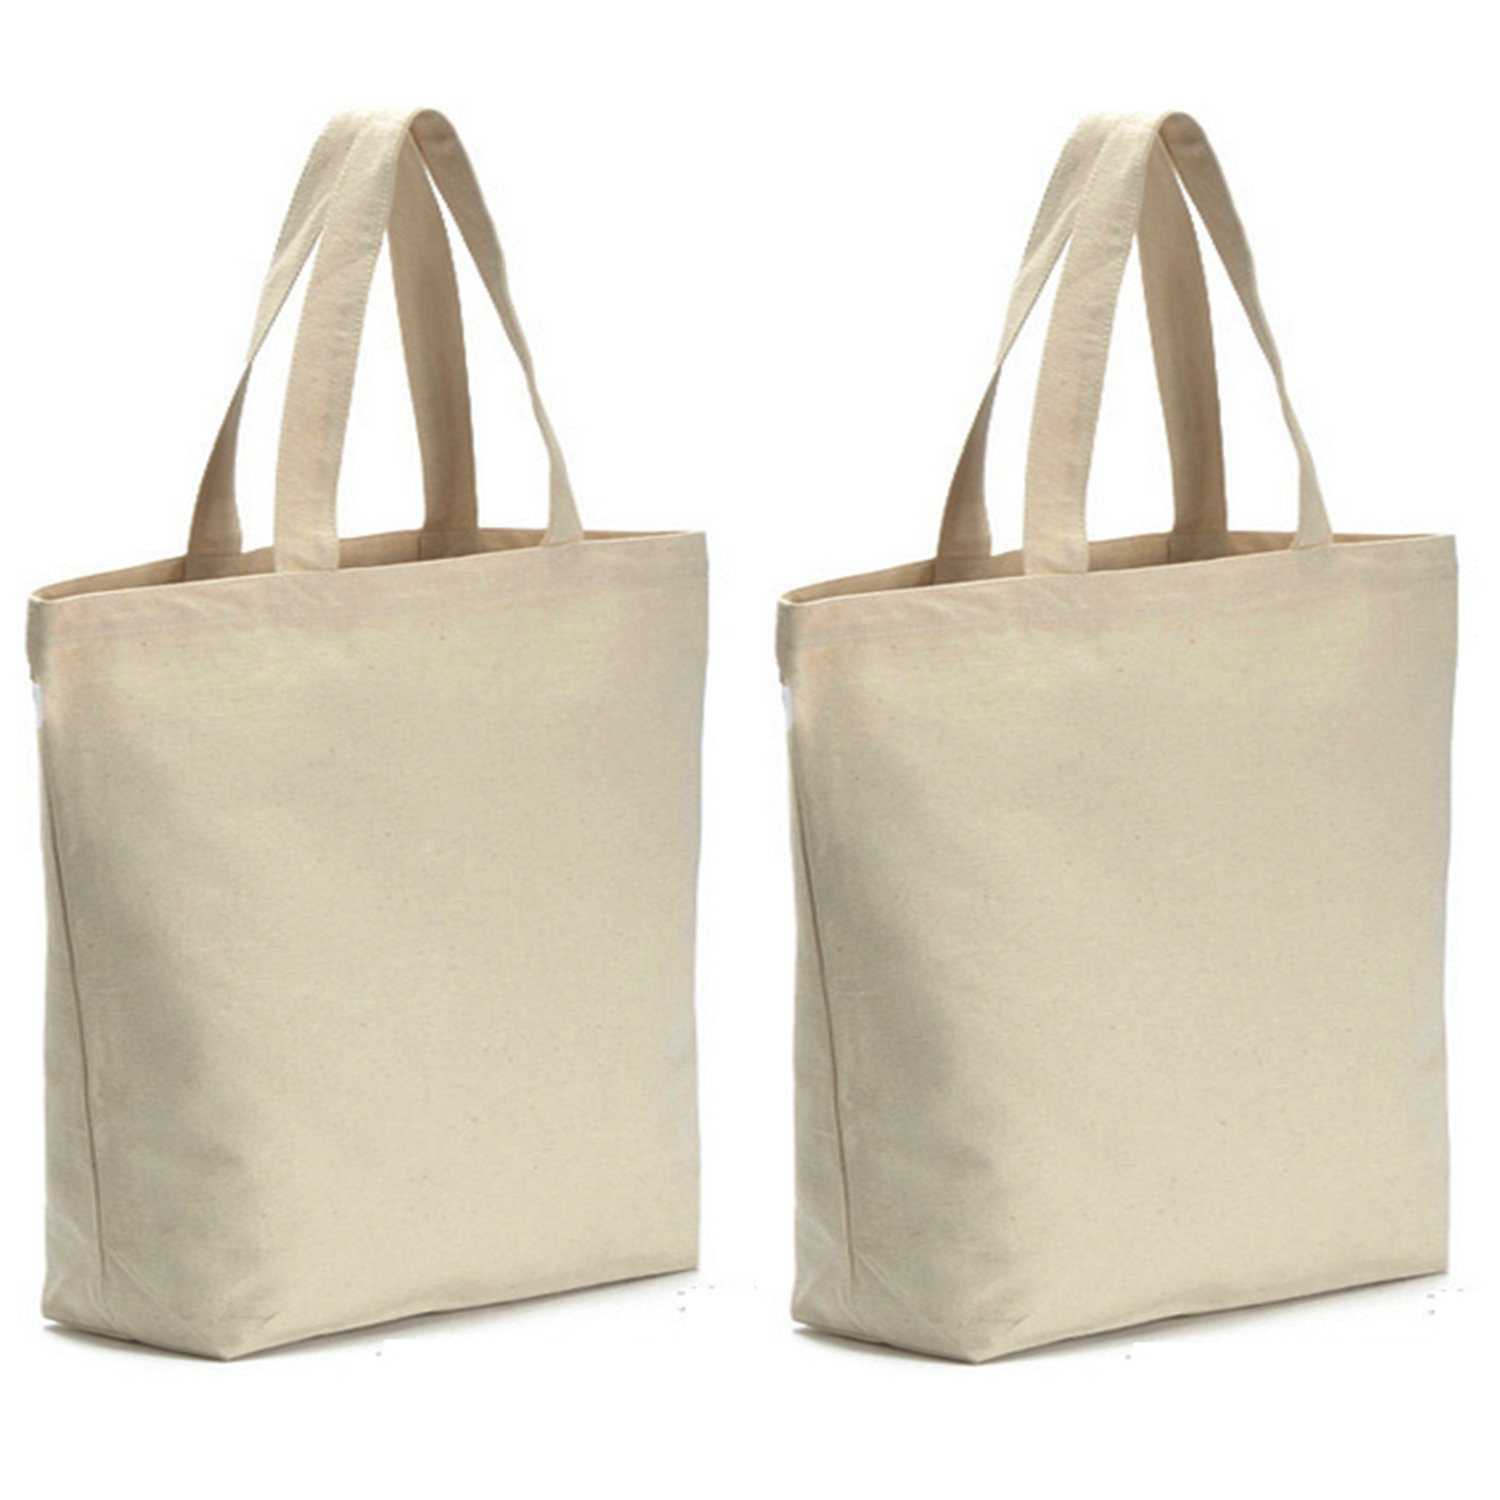 Axe Sickle 12oz Heavy Canvas Tote Bag 16'' W X 16'' H X 4.2'' Bottom Gusset (2 per pack), Tote shopping bag, Washable grocery tote bag, Craft Canvas Bag White, Cloth Bag With Handles. by Axe Sickle (Image #1)